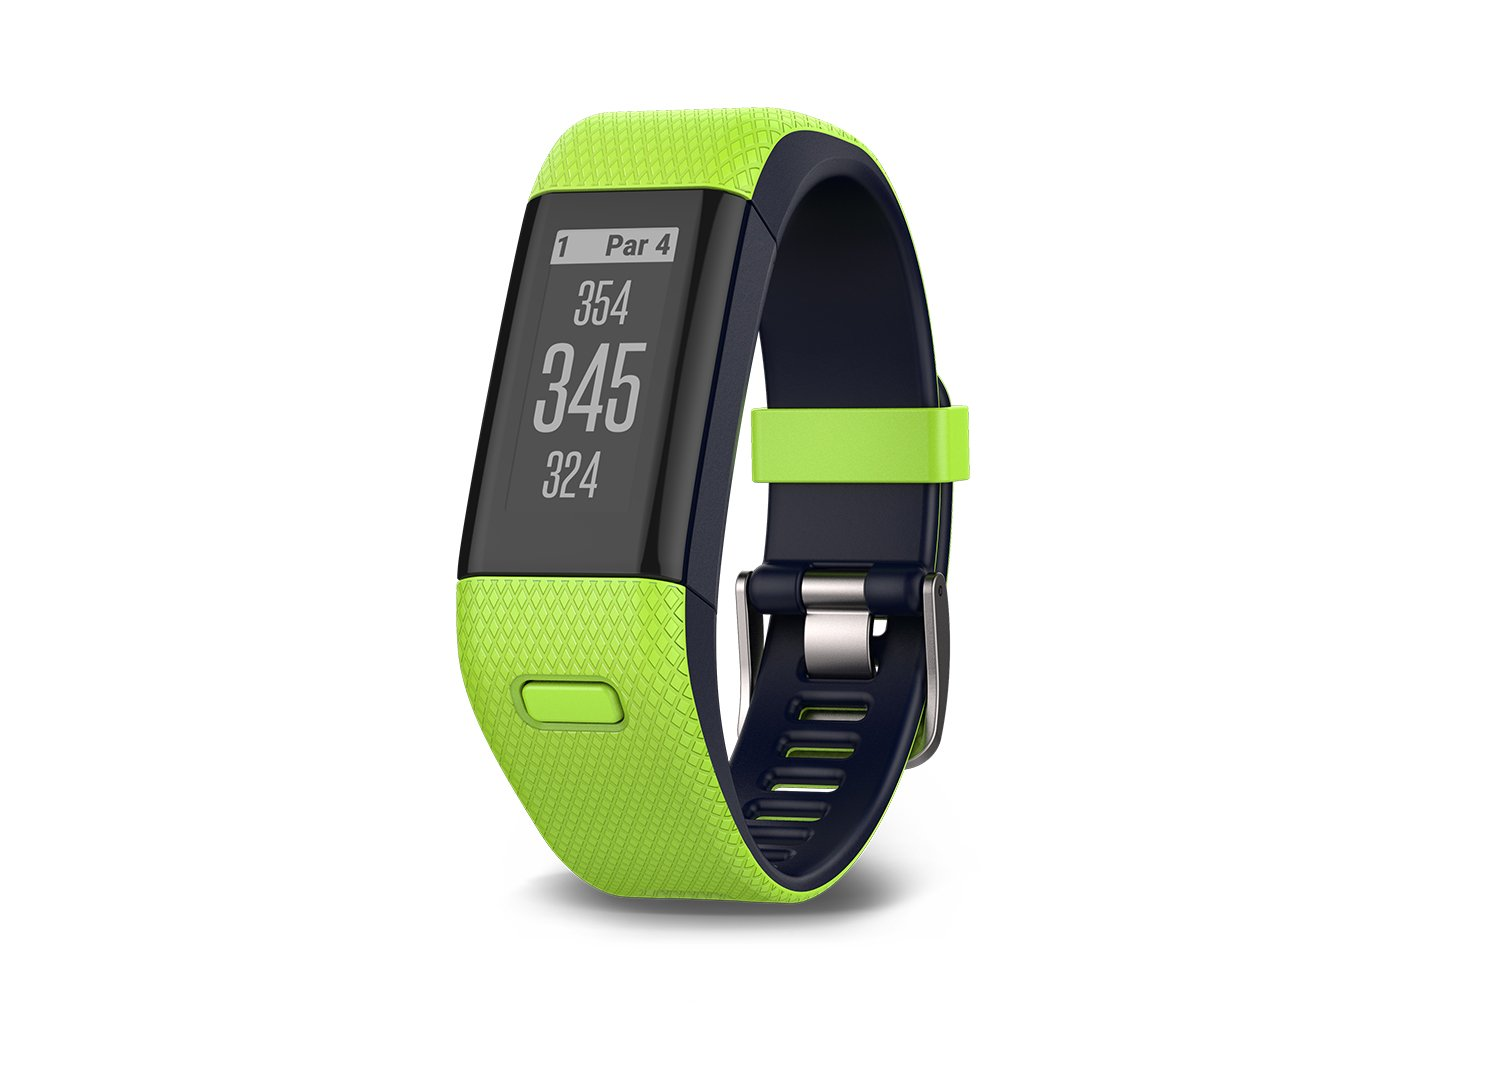 Garmin Approach X40 (Lime) Golf GPS & Fitness Band BUNDLE with PlayBetter USB Car Charge Adapter by Garmin (Image #2)